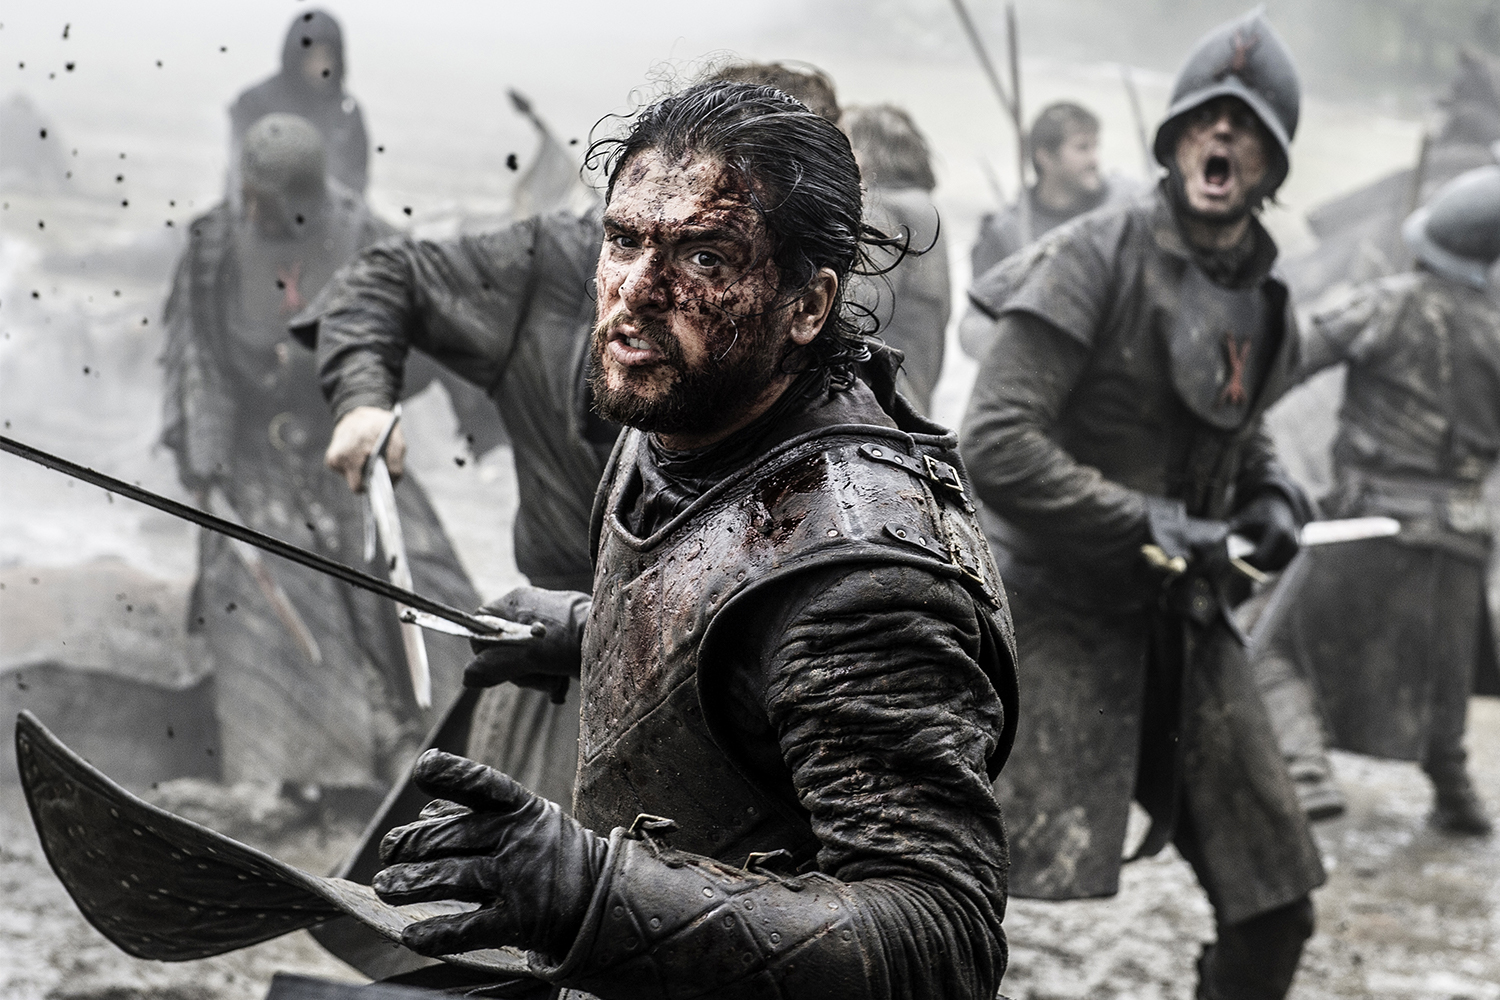 Want to train like your favorite Game of Thrones character? Listen to Dalton Wong.